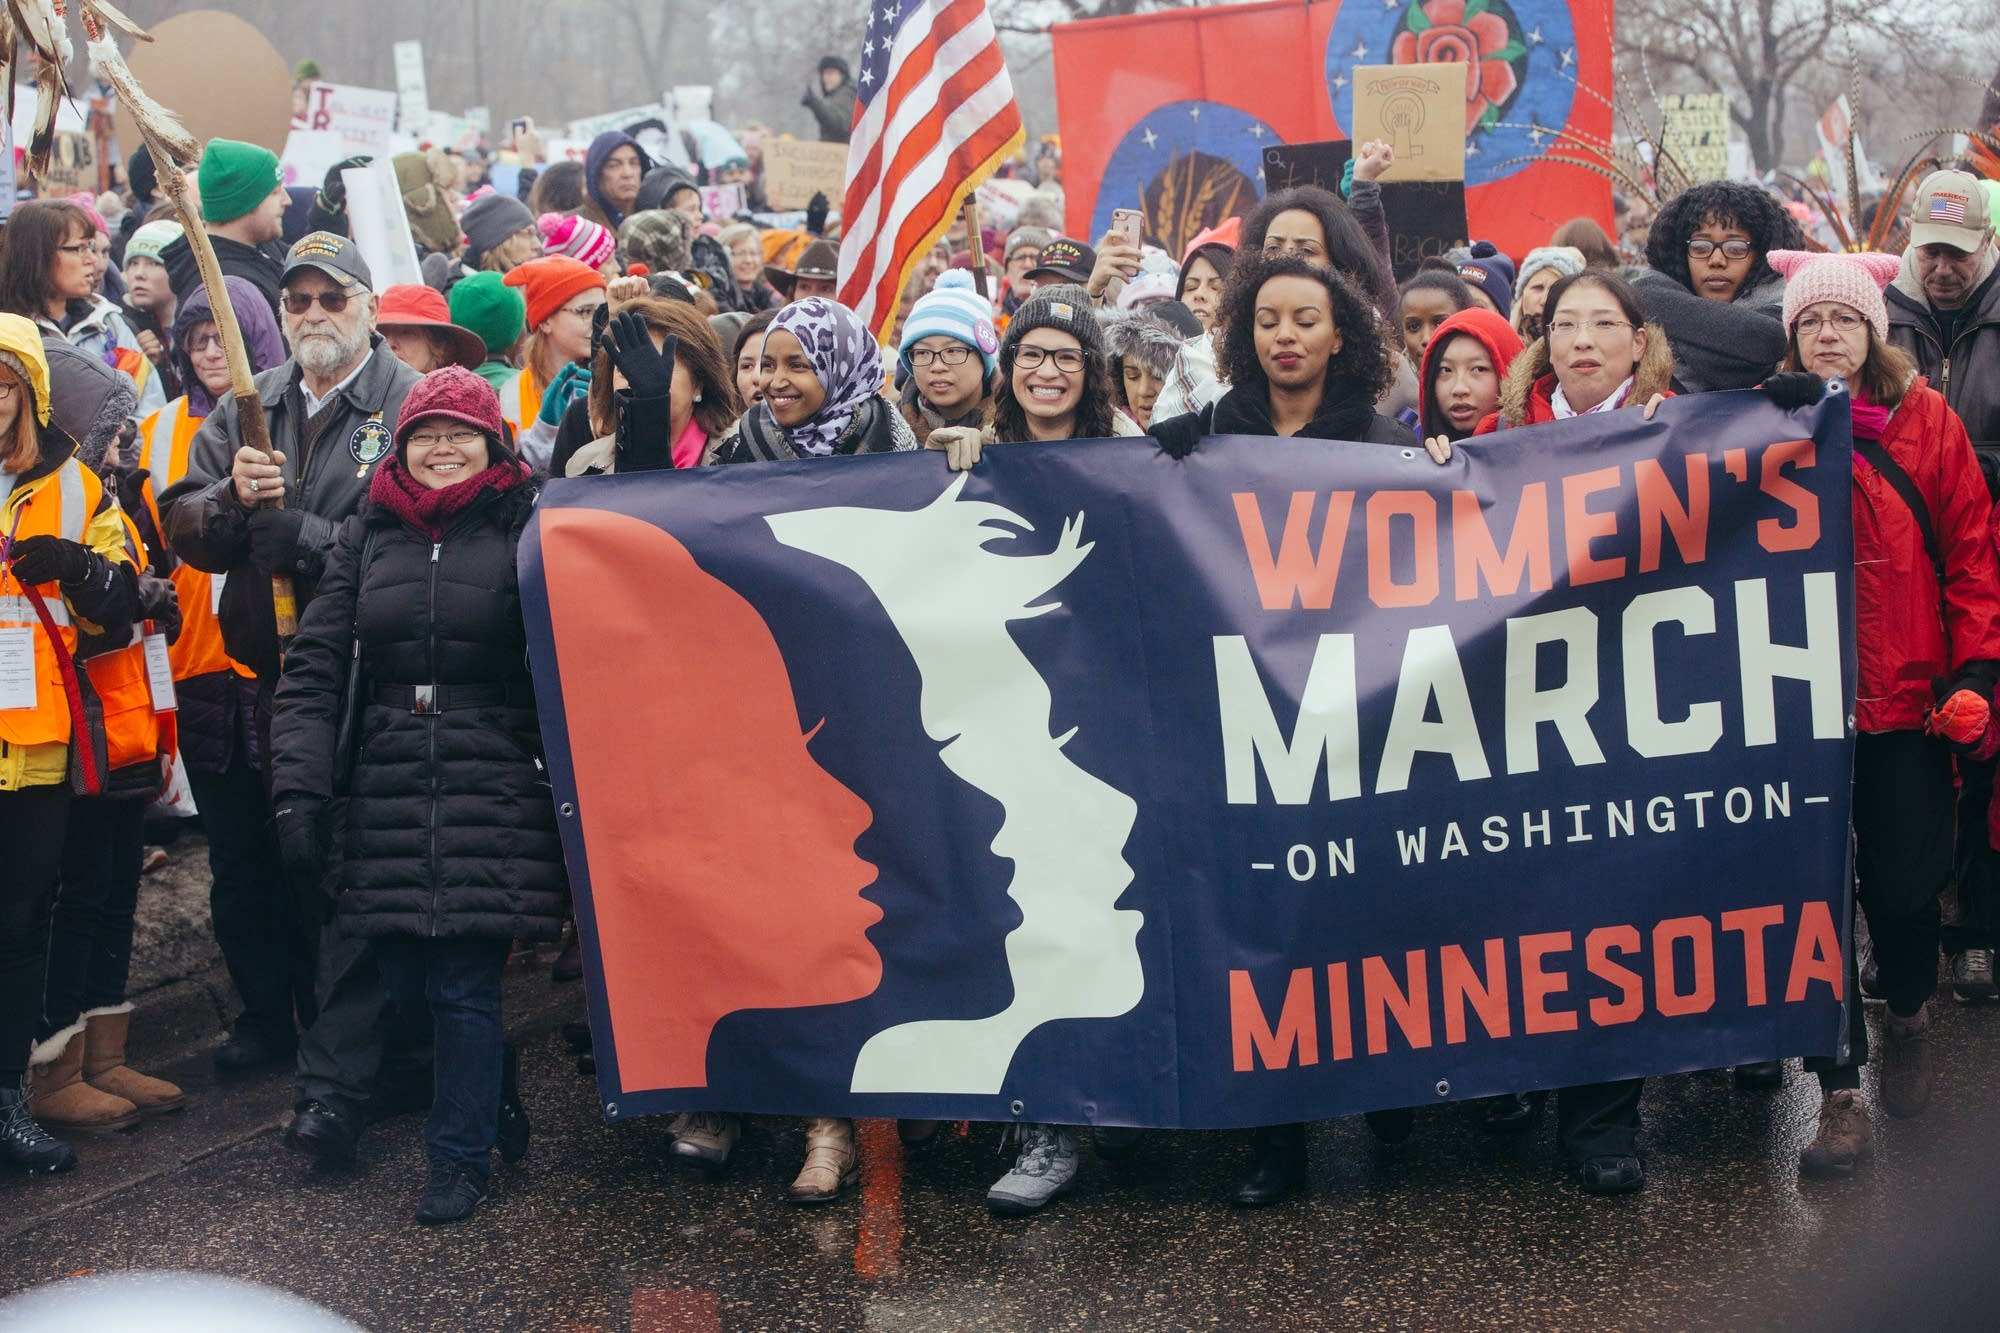 Ilhan Omar and other women lead the march.